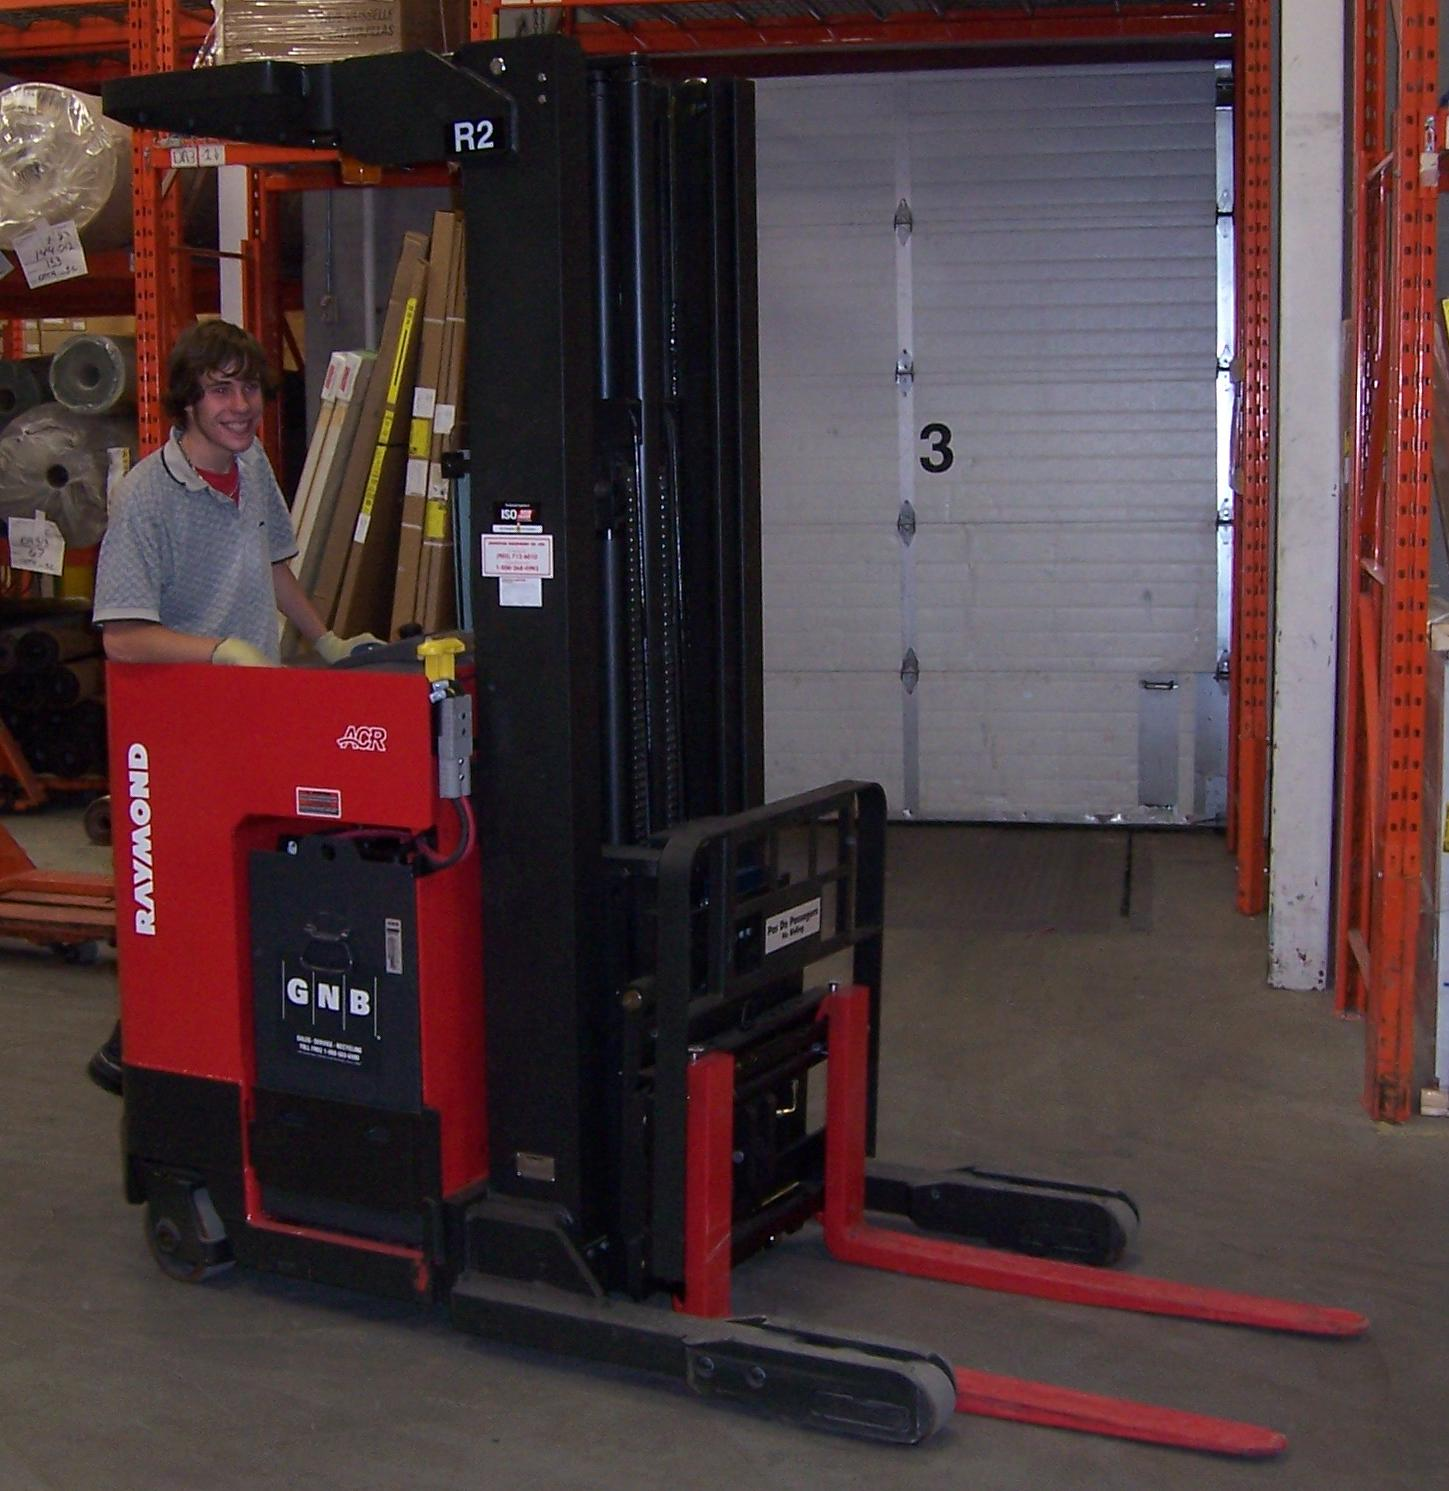 hight resolution of a reach truck with a pantograph allowing the extension of the forks in tight aisles